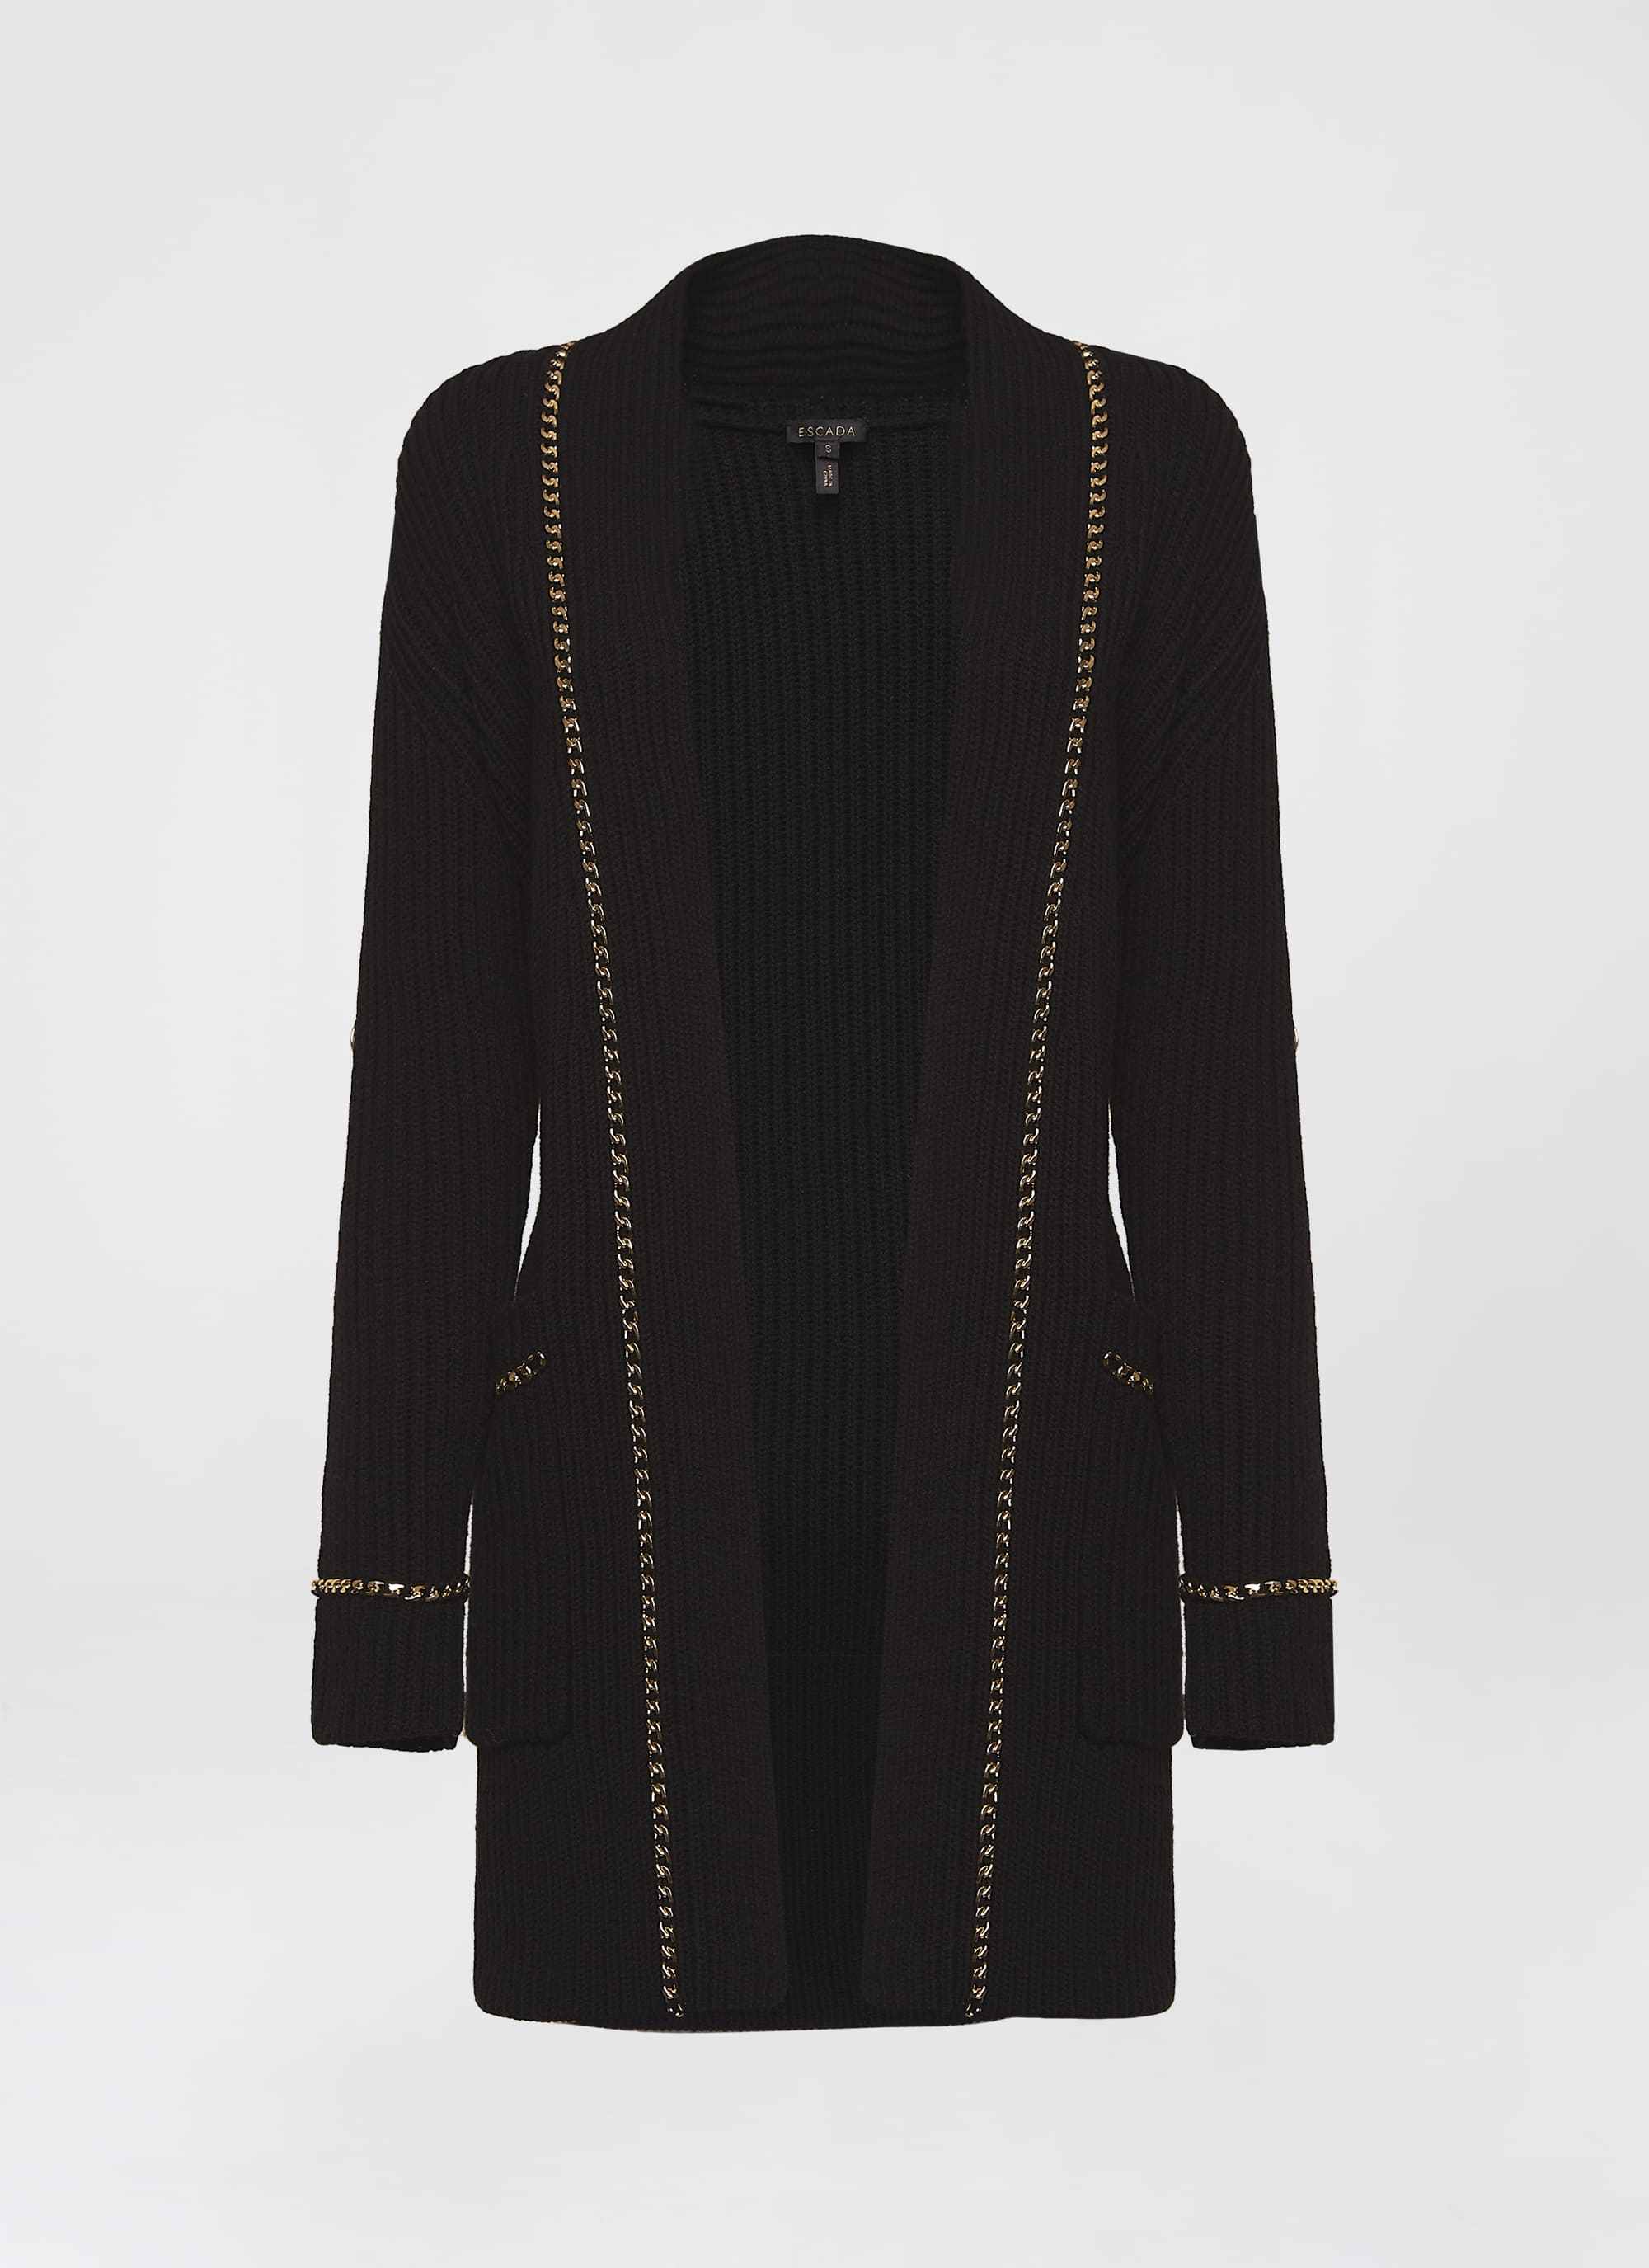 Wool cashmere cardigan with chain detail - ESCADA